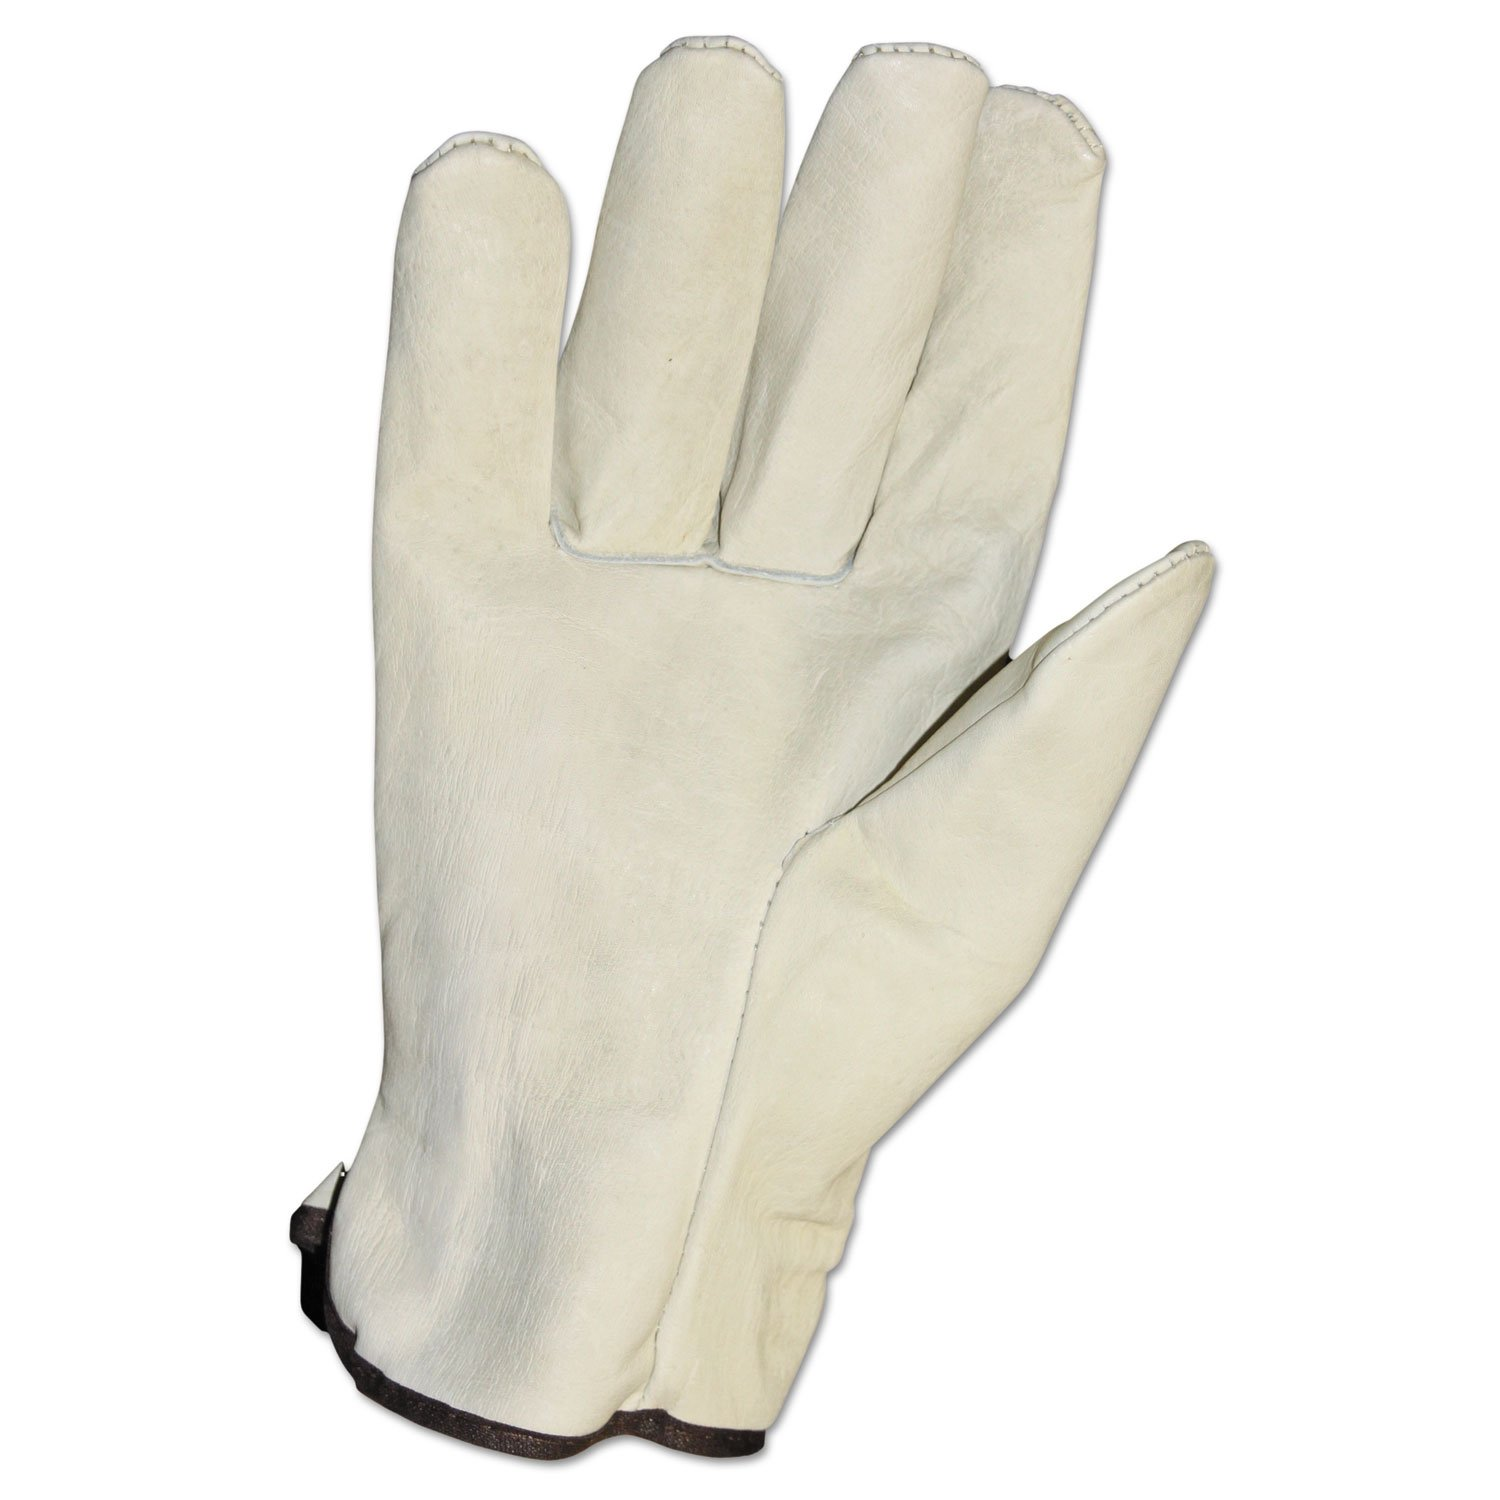 Unlined Grain-Leather Drivers' Gloves, Large, Cream, Dozen by Impact